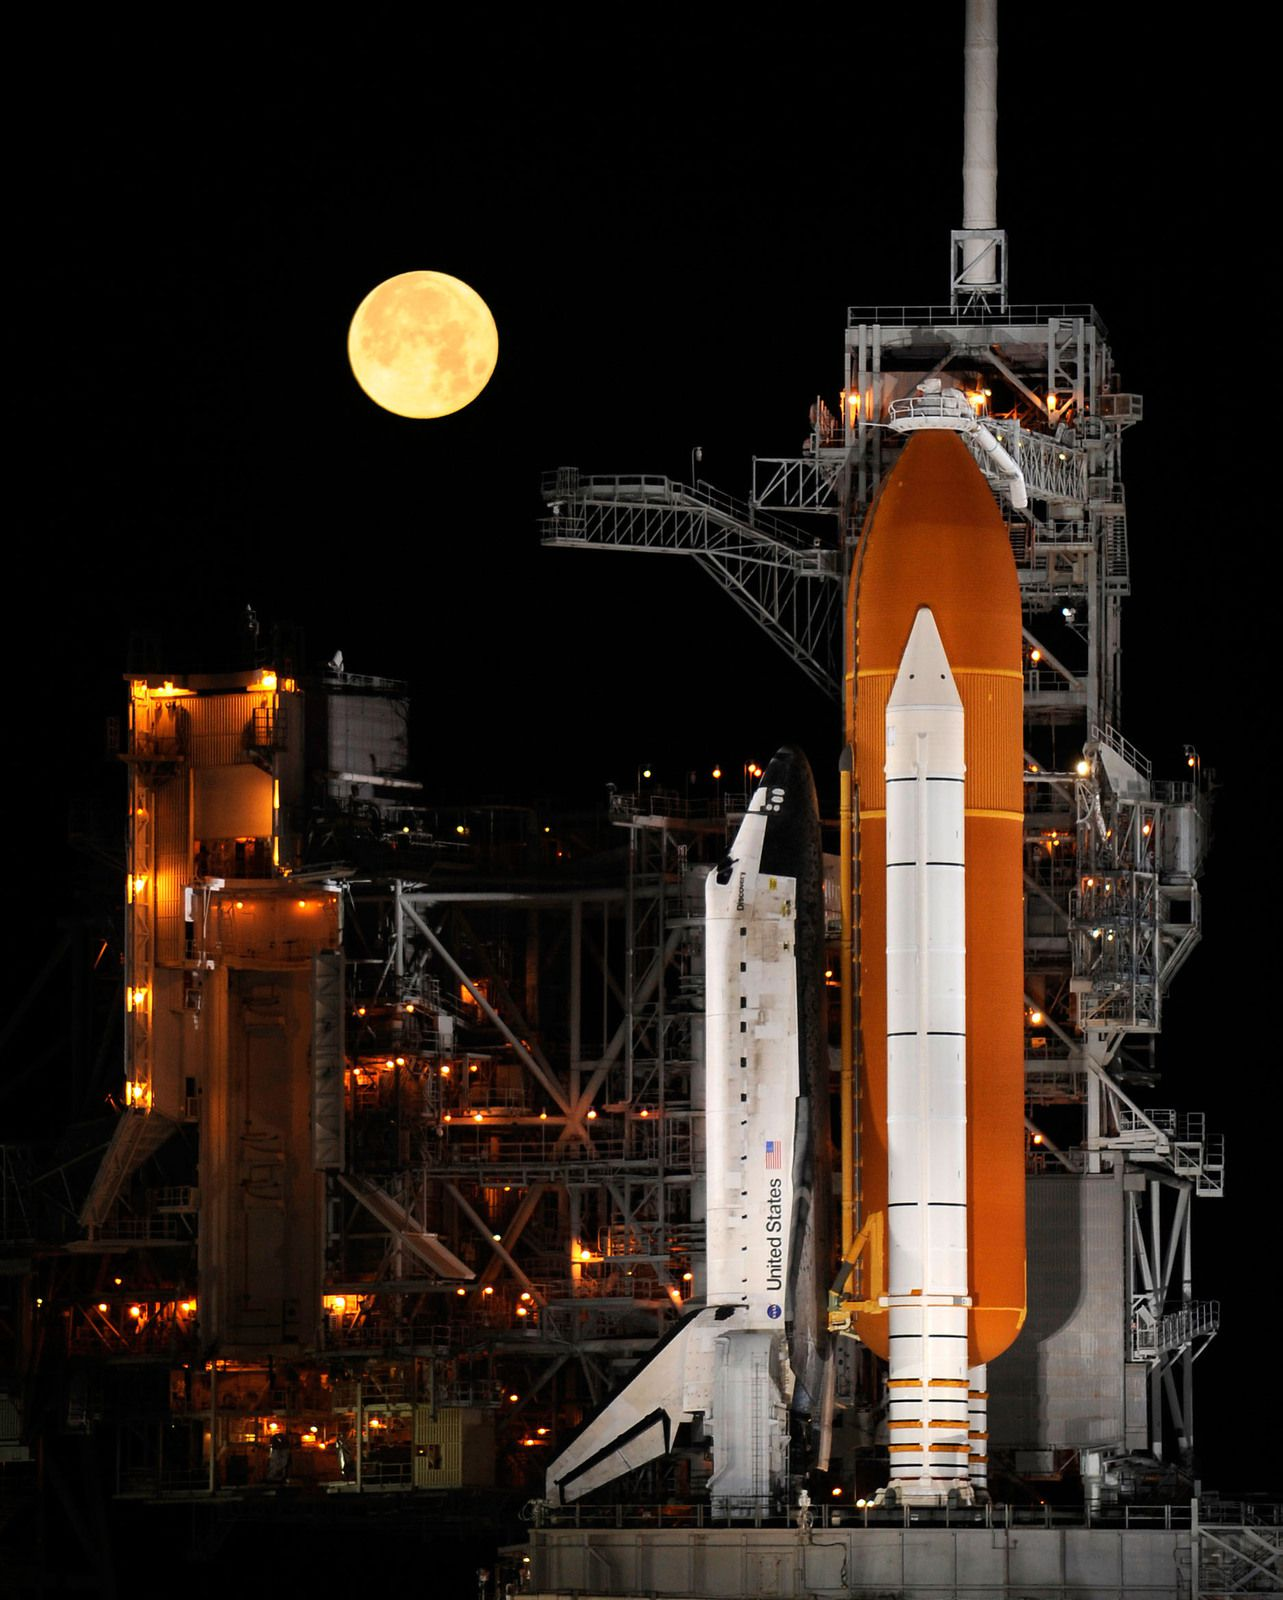 Shuttle Discovery With Moon (NASA/Bill Ingalls)